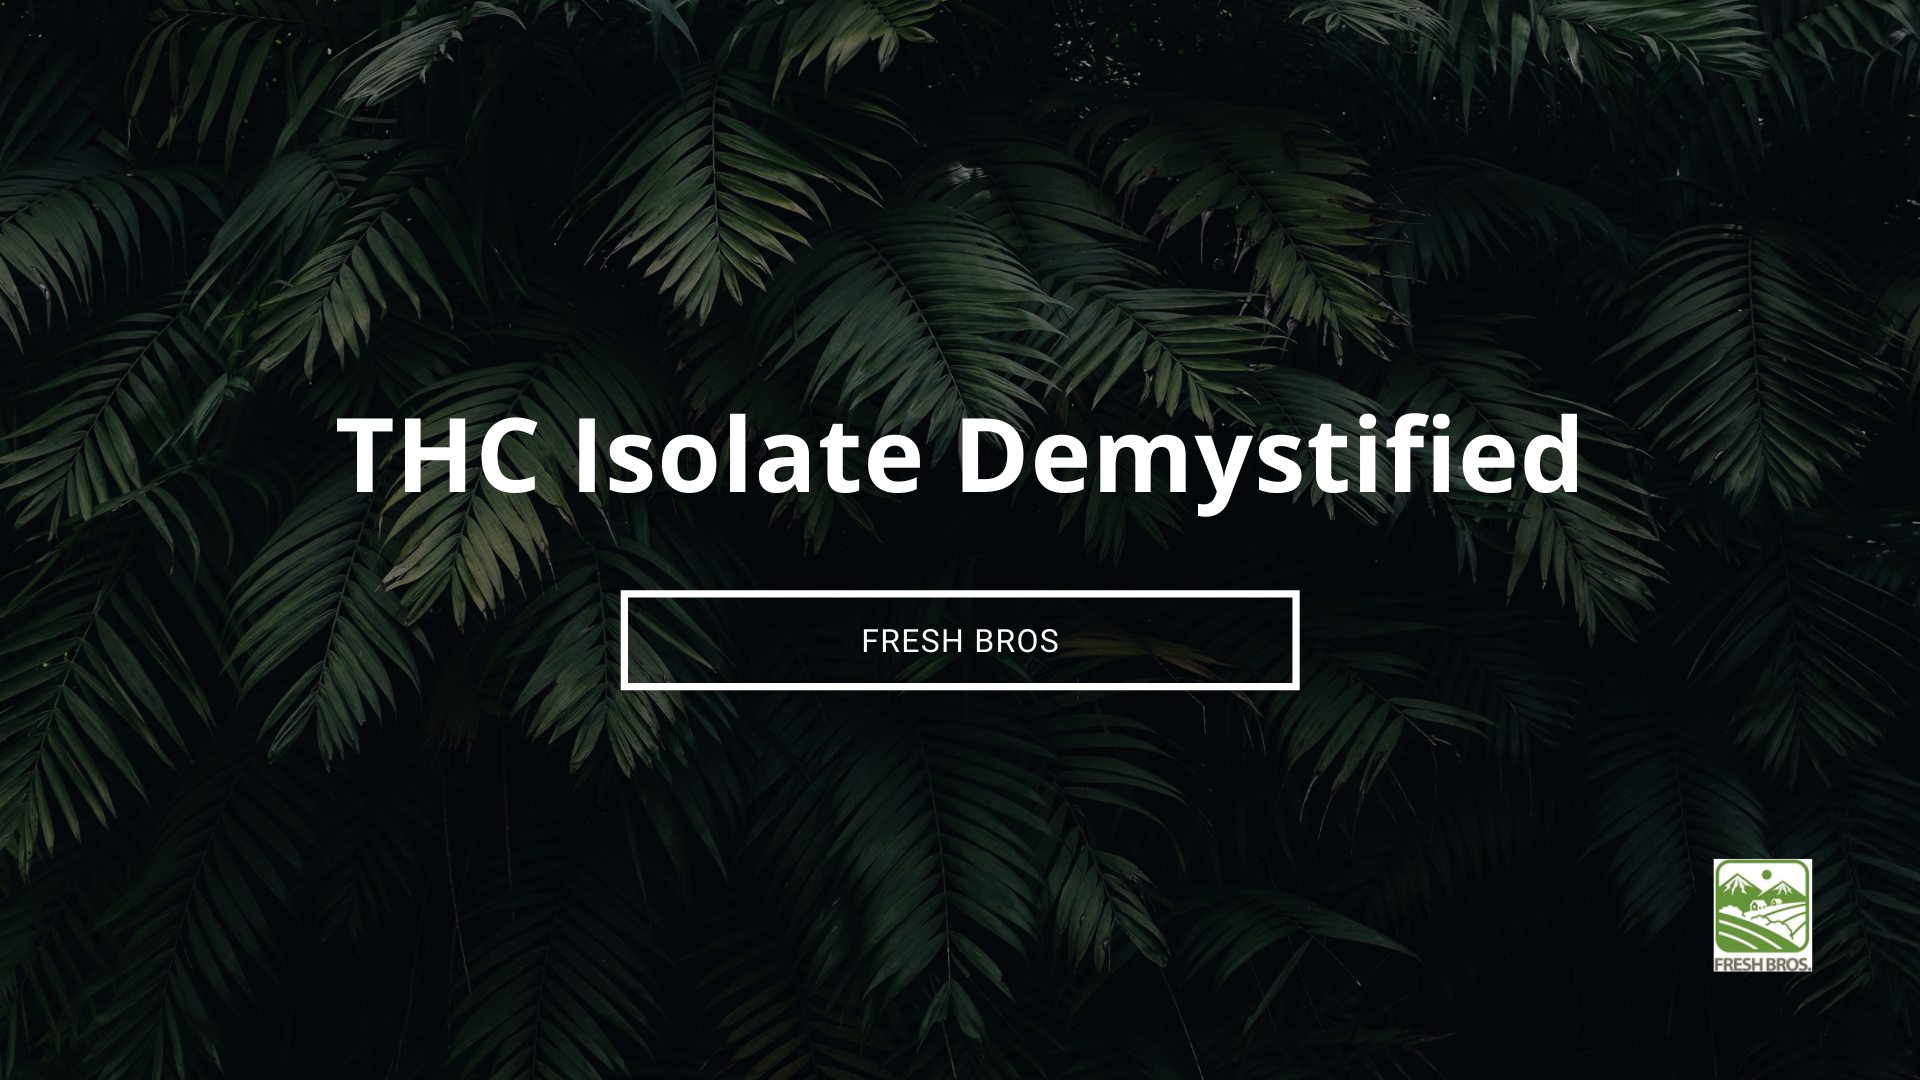 THC Isolate: One of the Most Potent Isolates in the Cannabis World